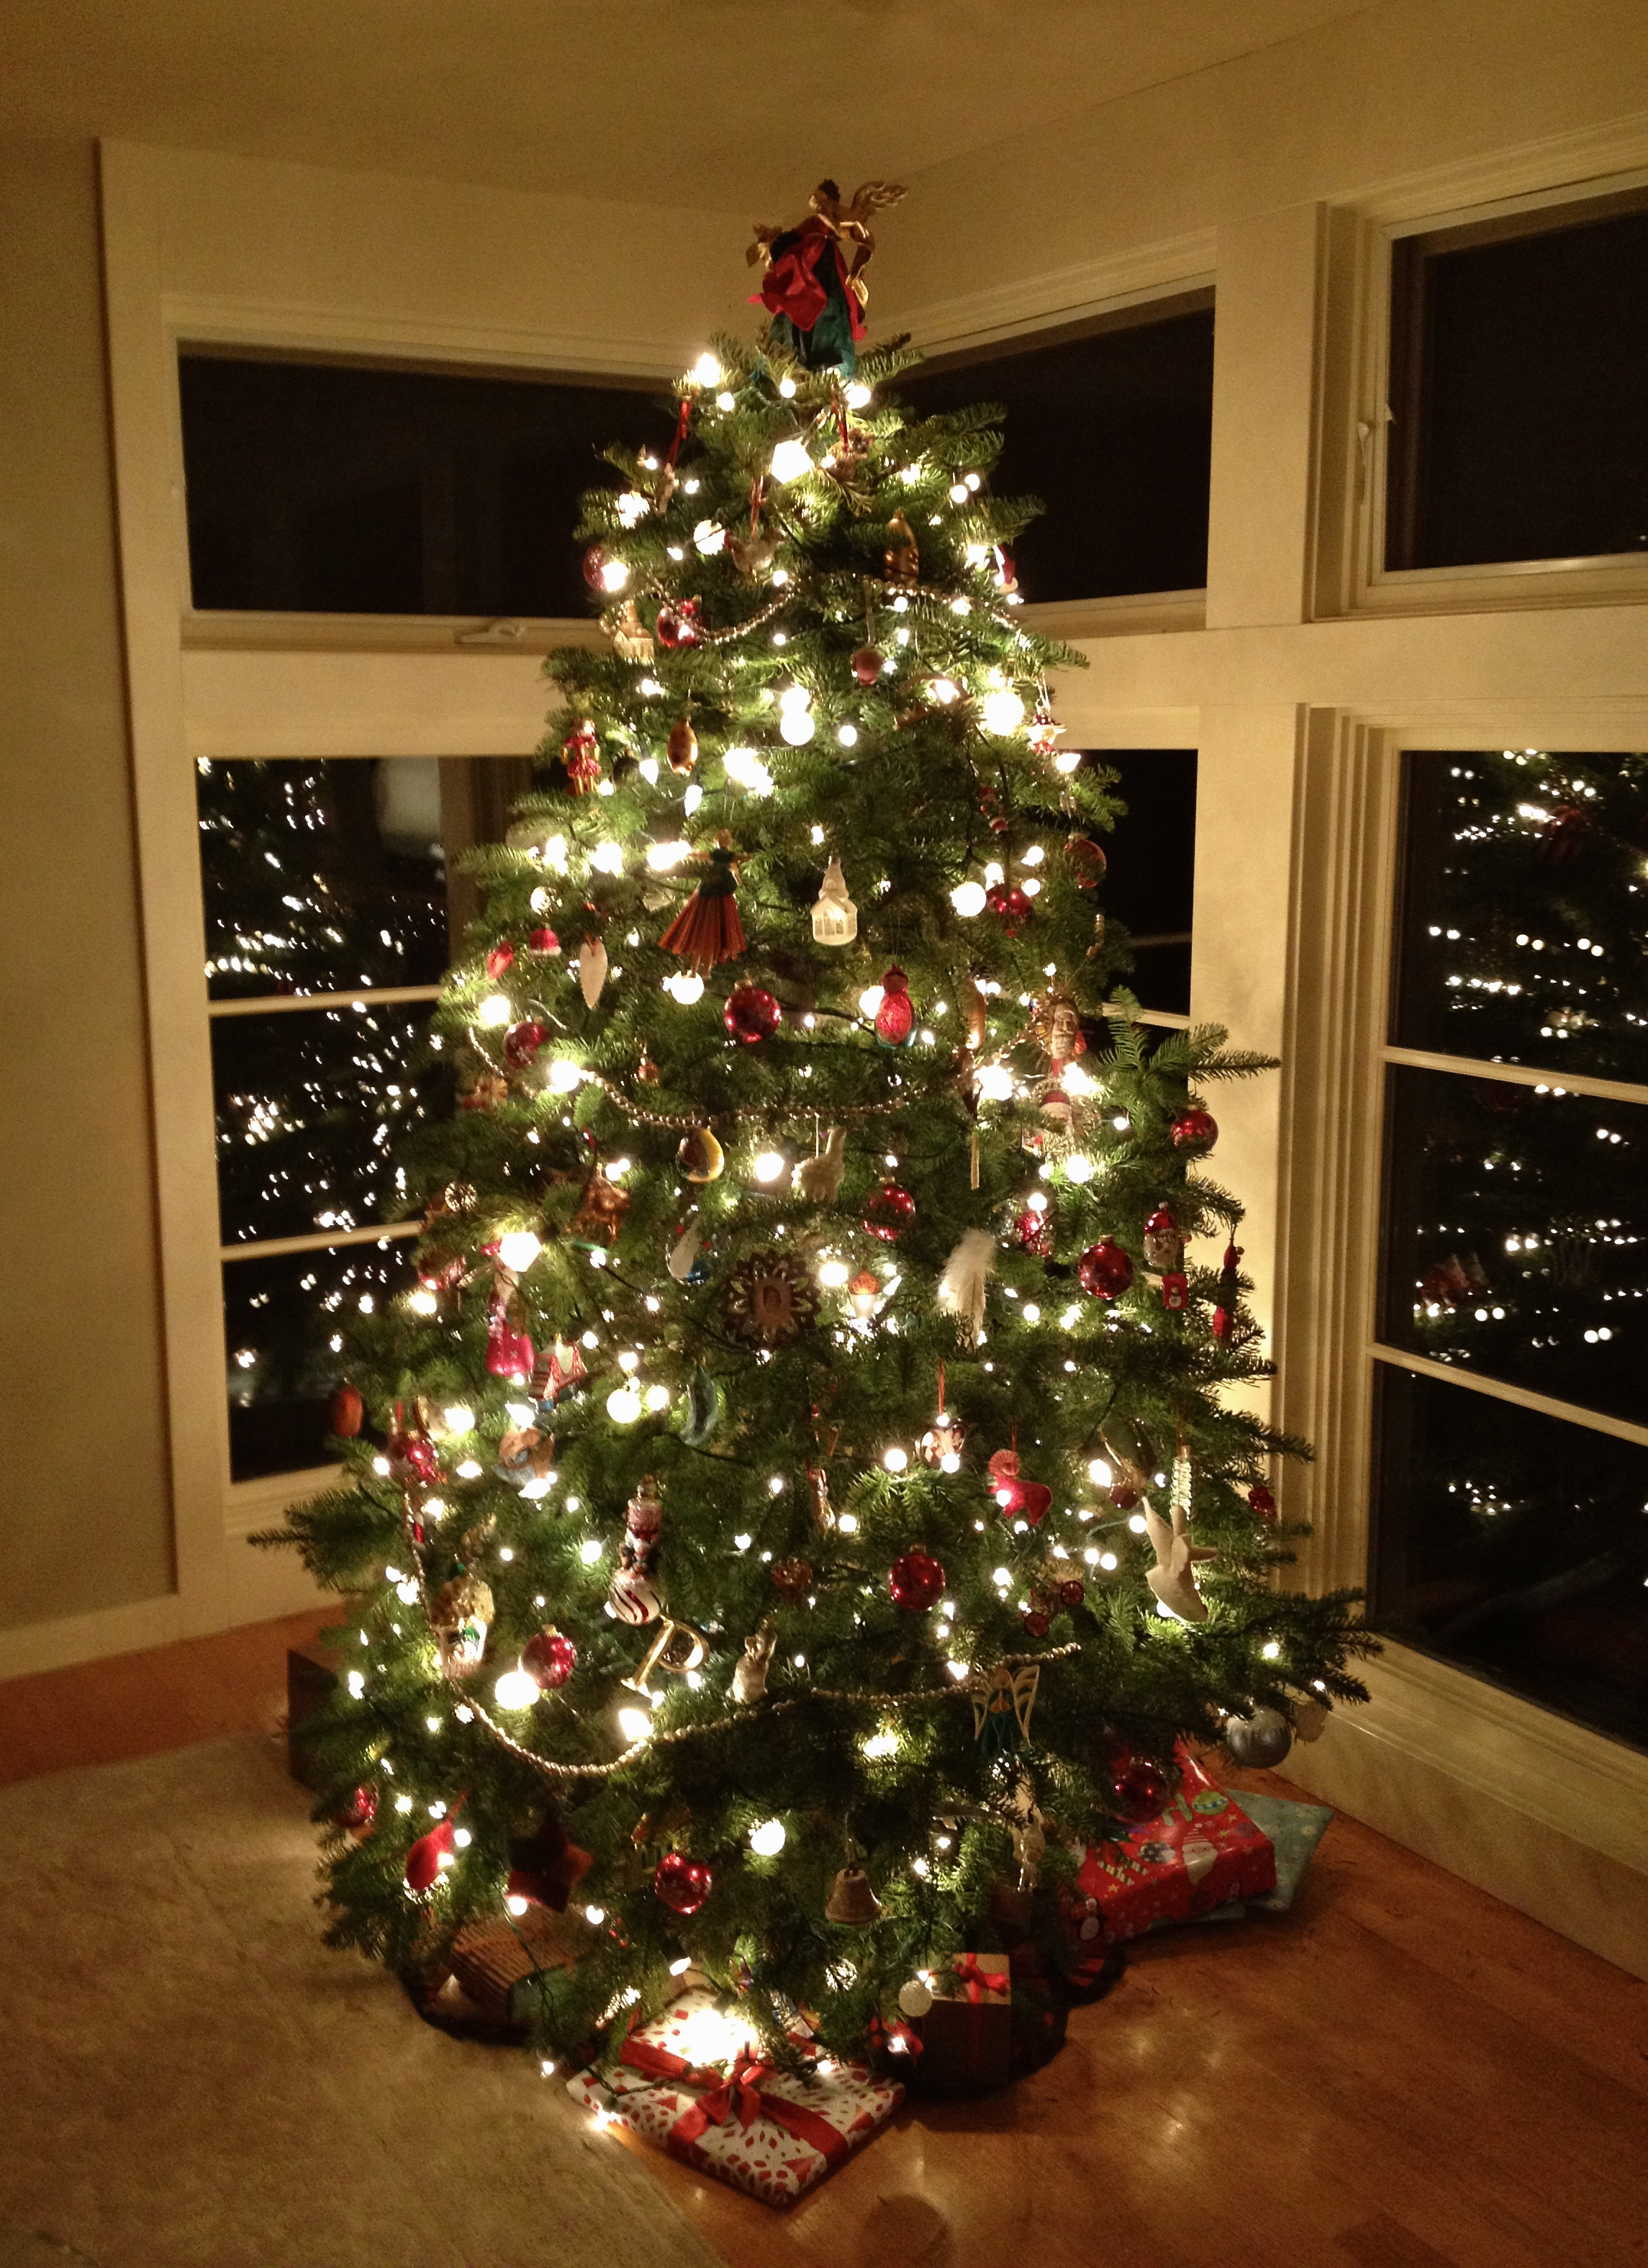 Last minute holiday decorating ideas Ideas for decorating a christmas tree